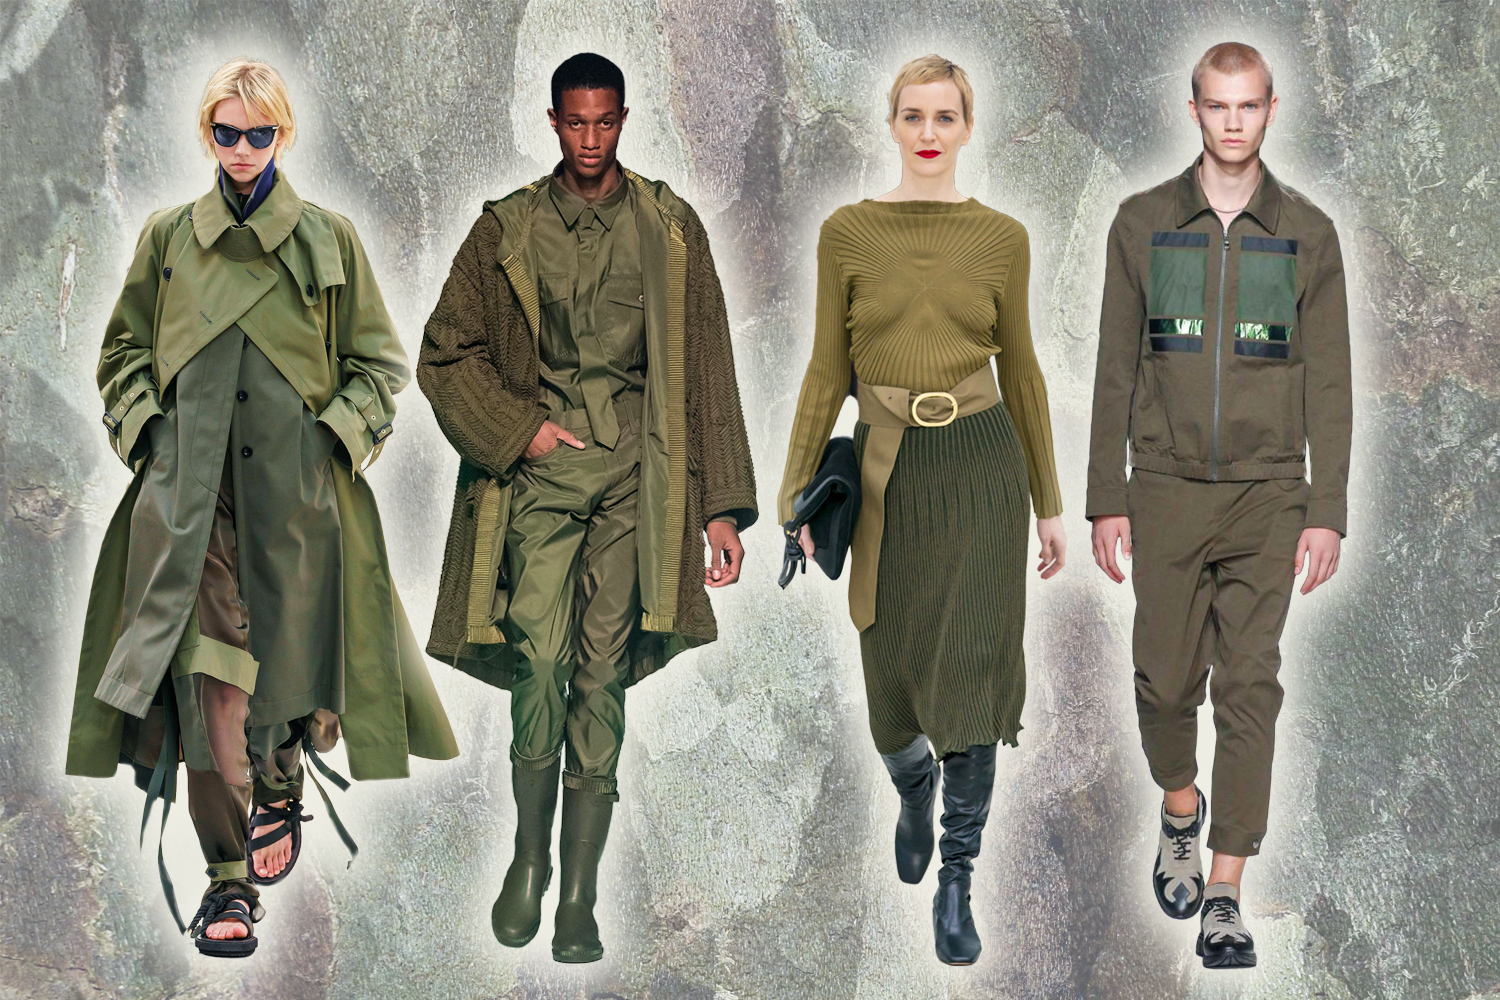 a collage with four military-isnpired high fashion outfits